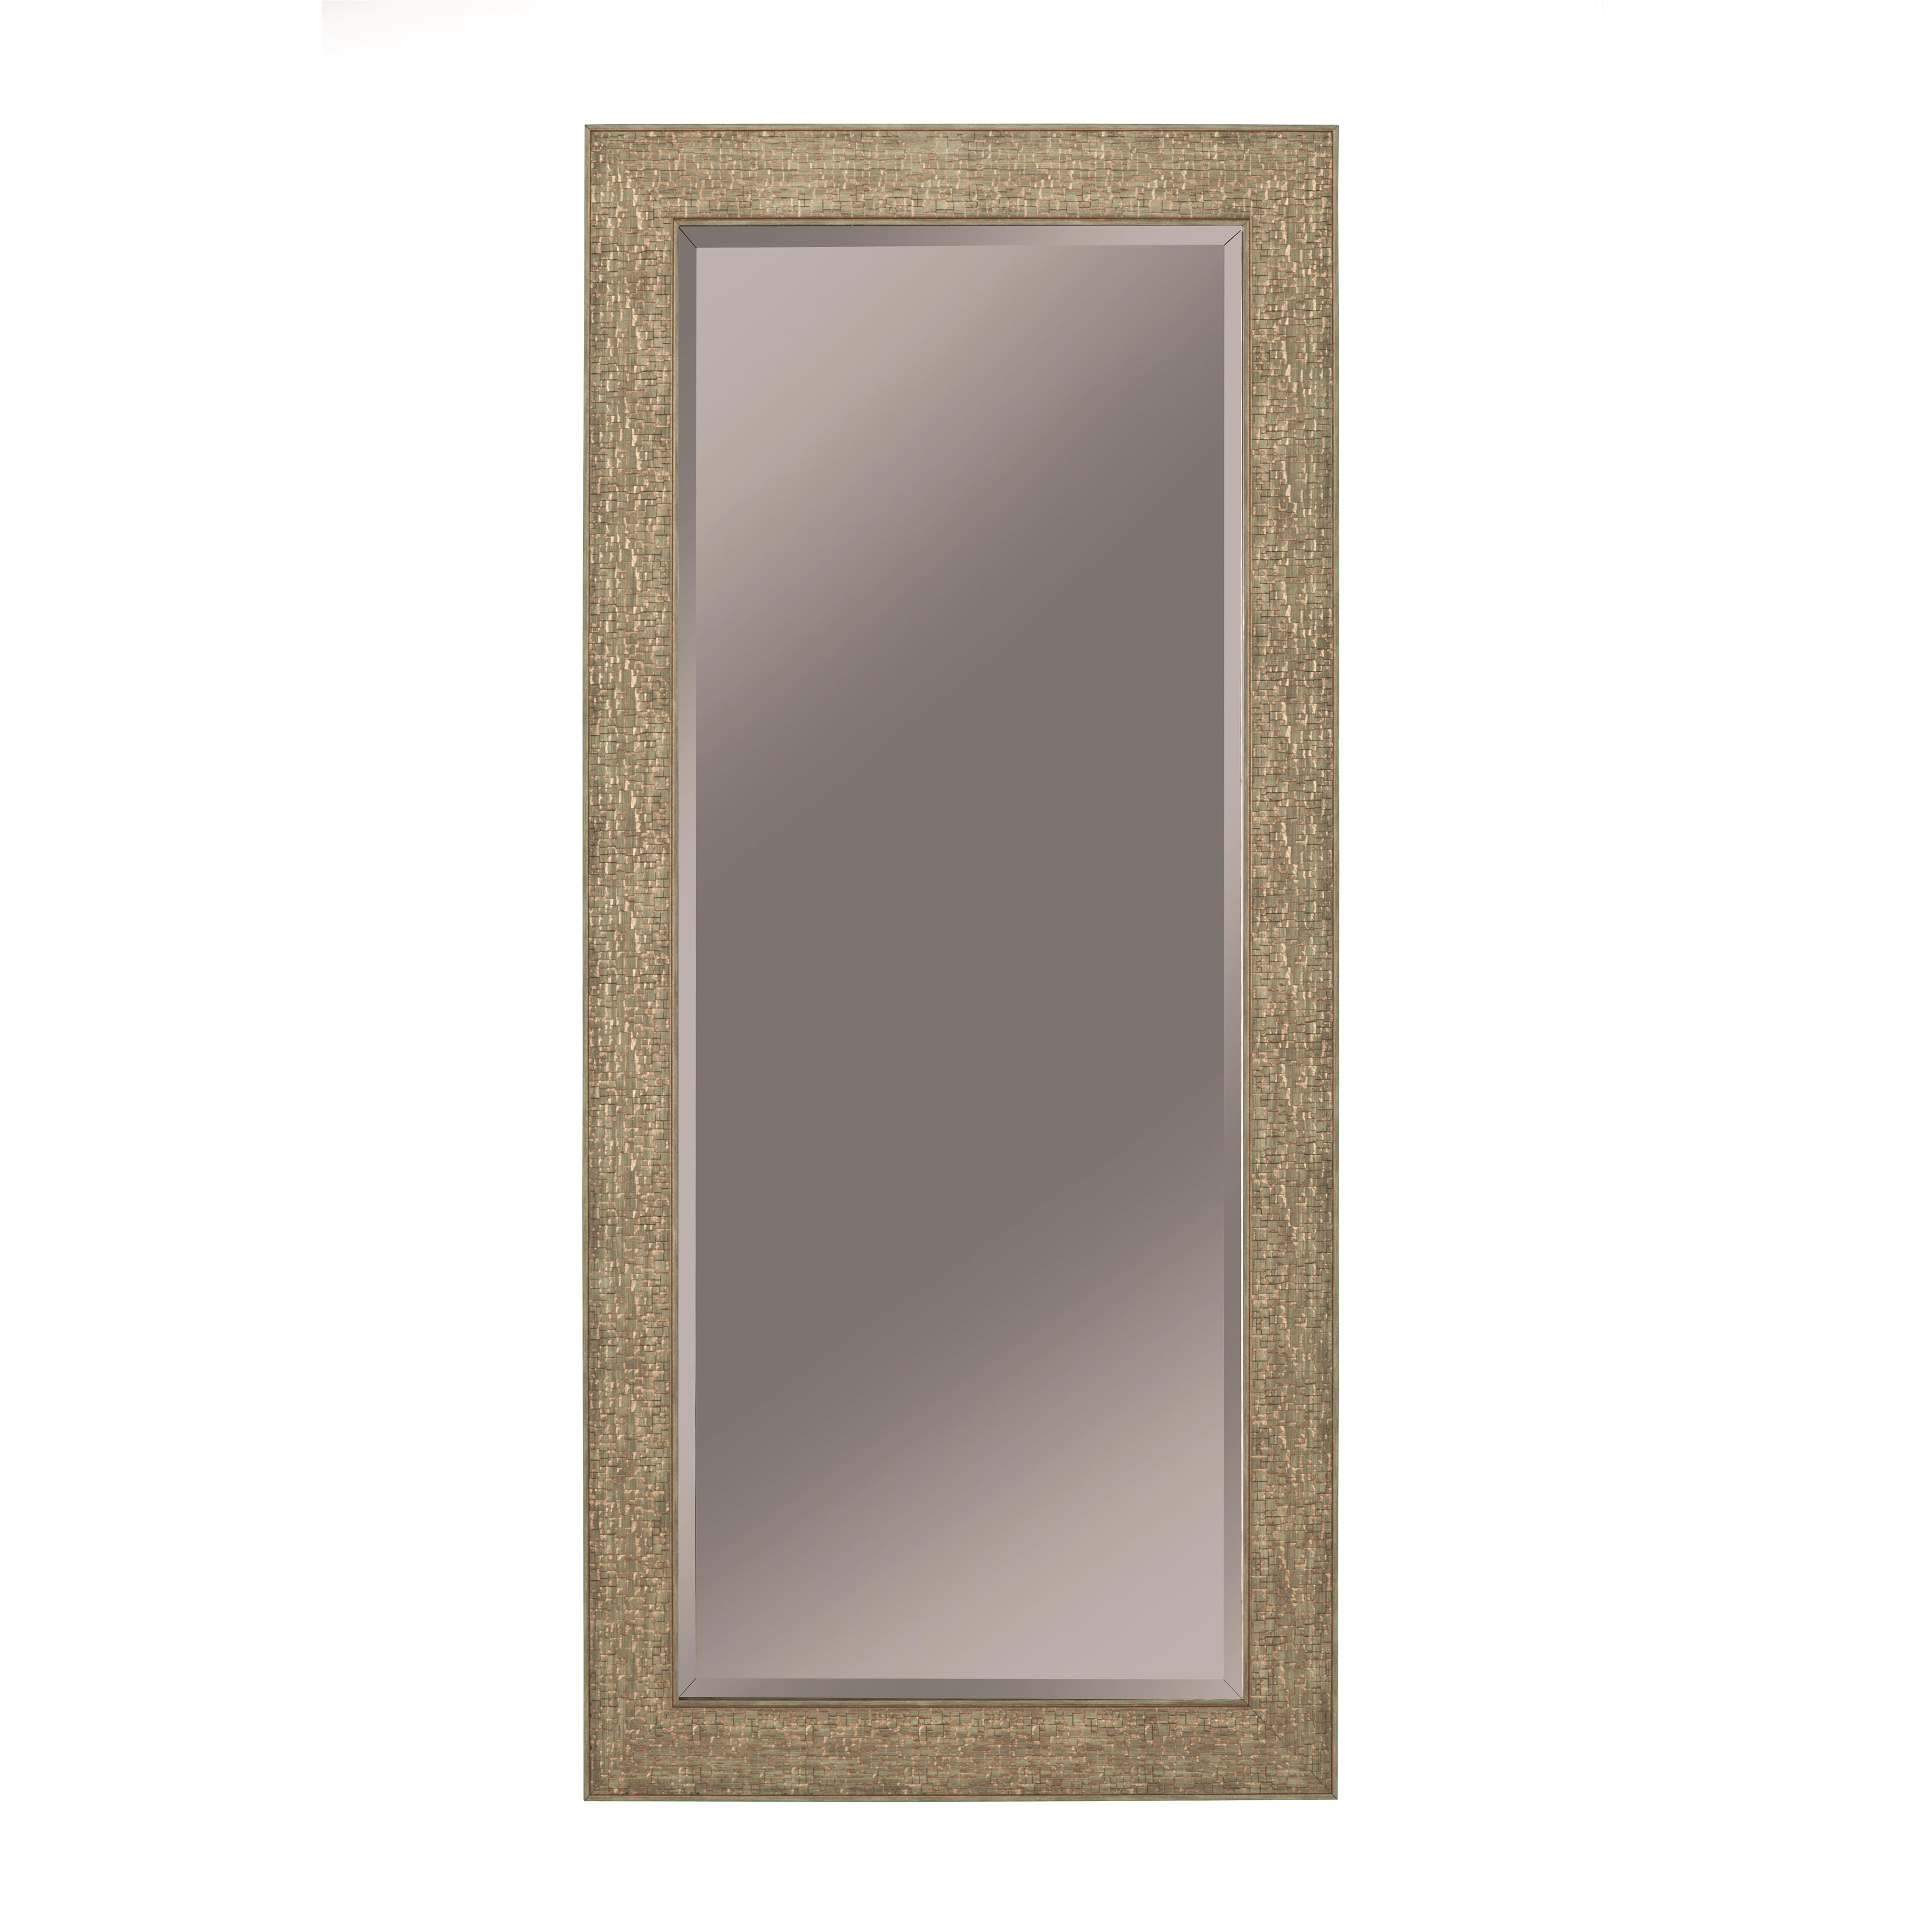 Coaster Accent Mirrors Mirror - Item Number: 901995